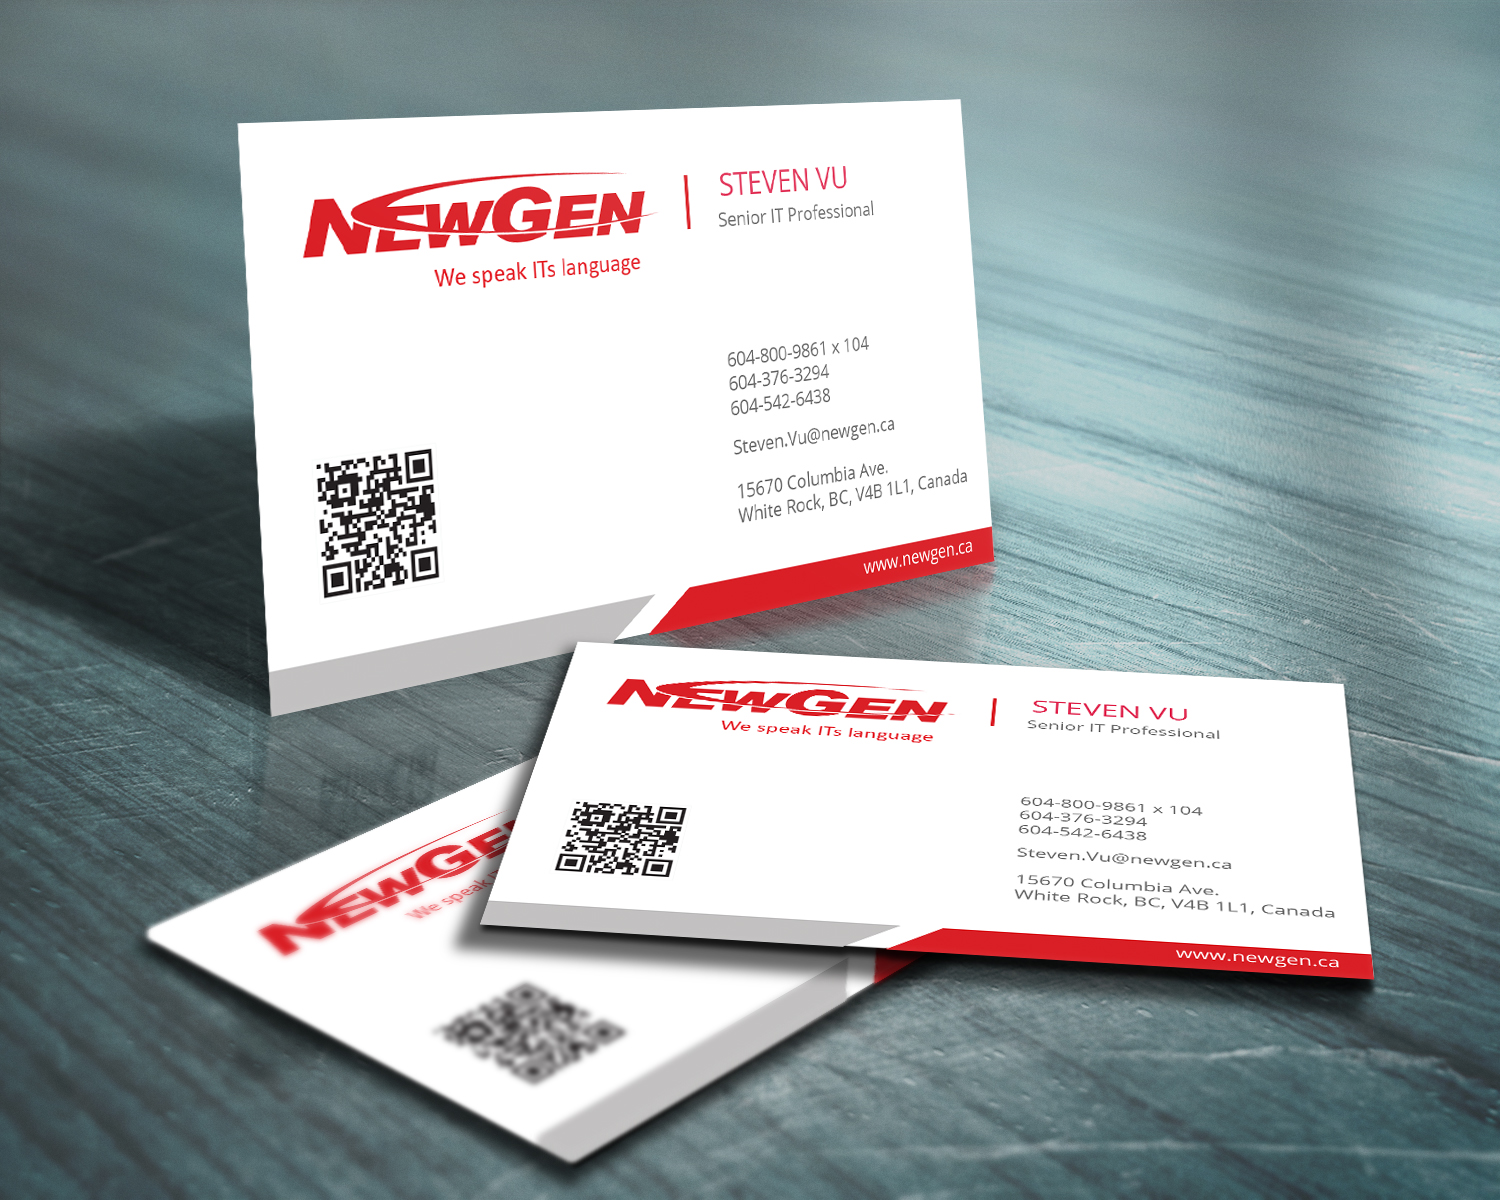 Business Card Design by Emad A Zyed - Entry No. 127 in the Business Card Design Contest Inspiring Business Card Design for NewGen Technologies.